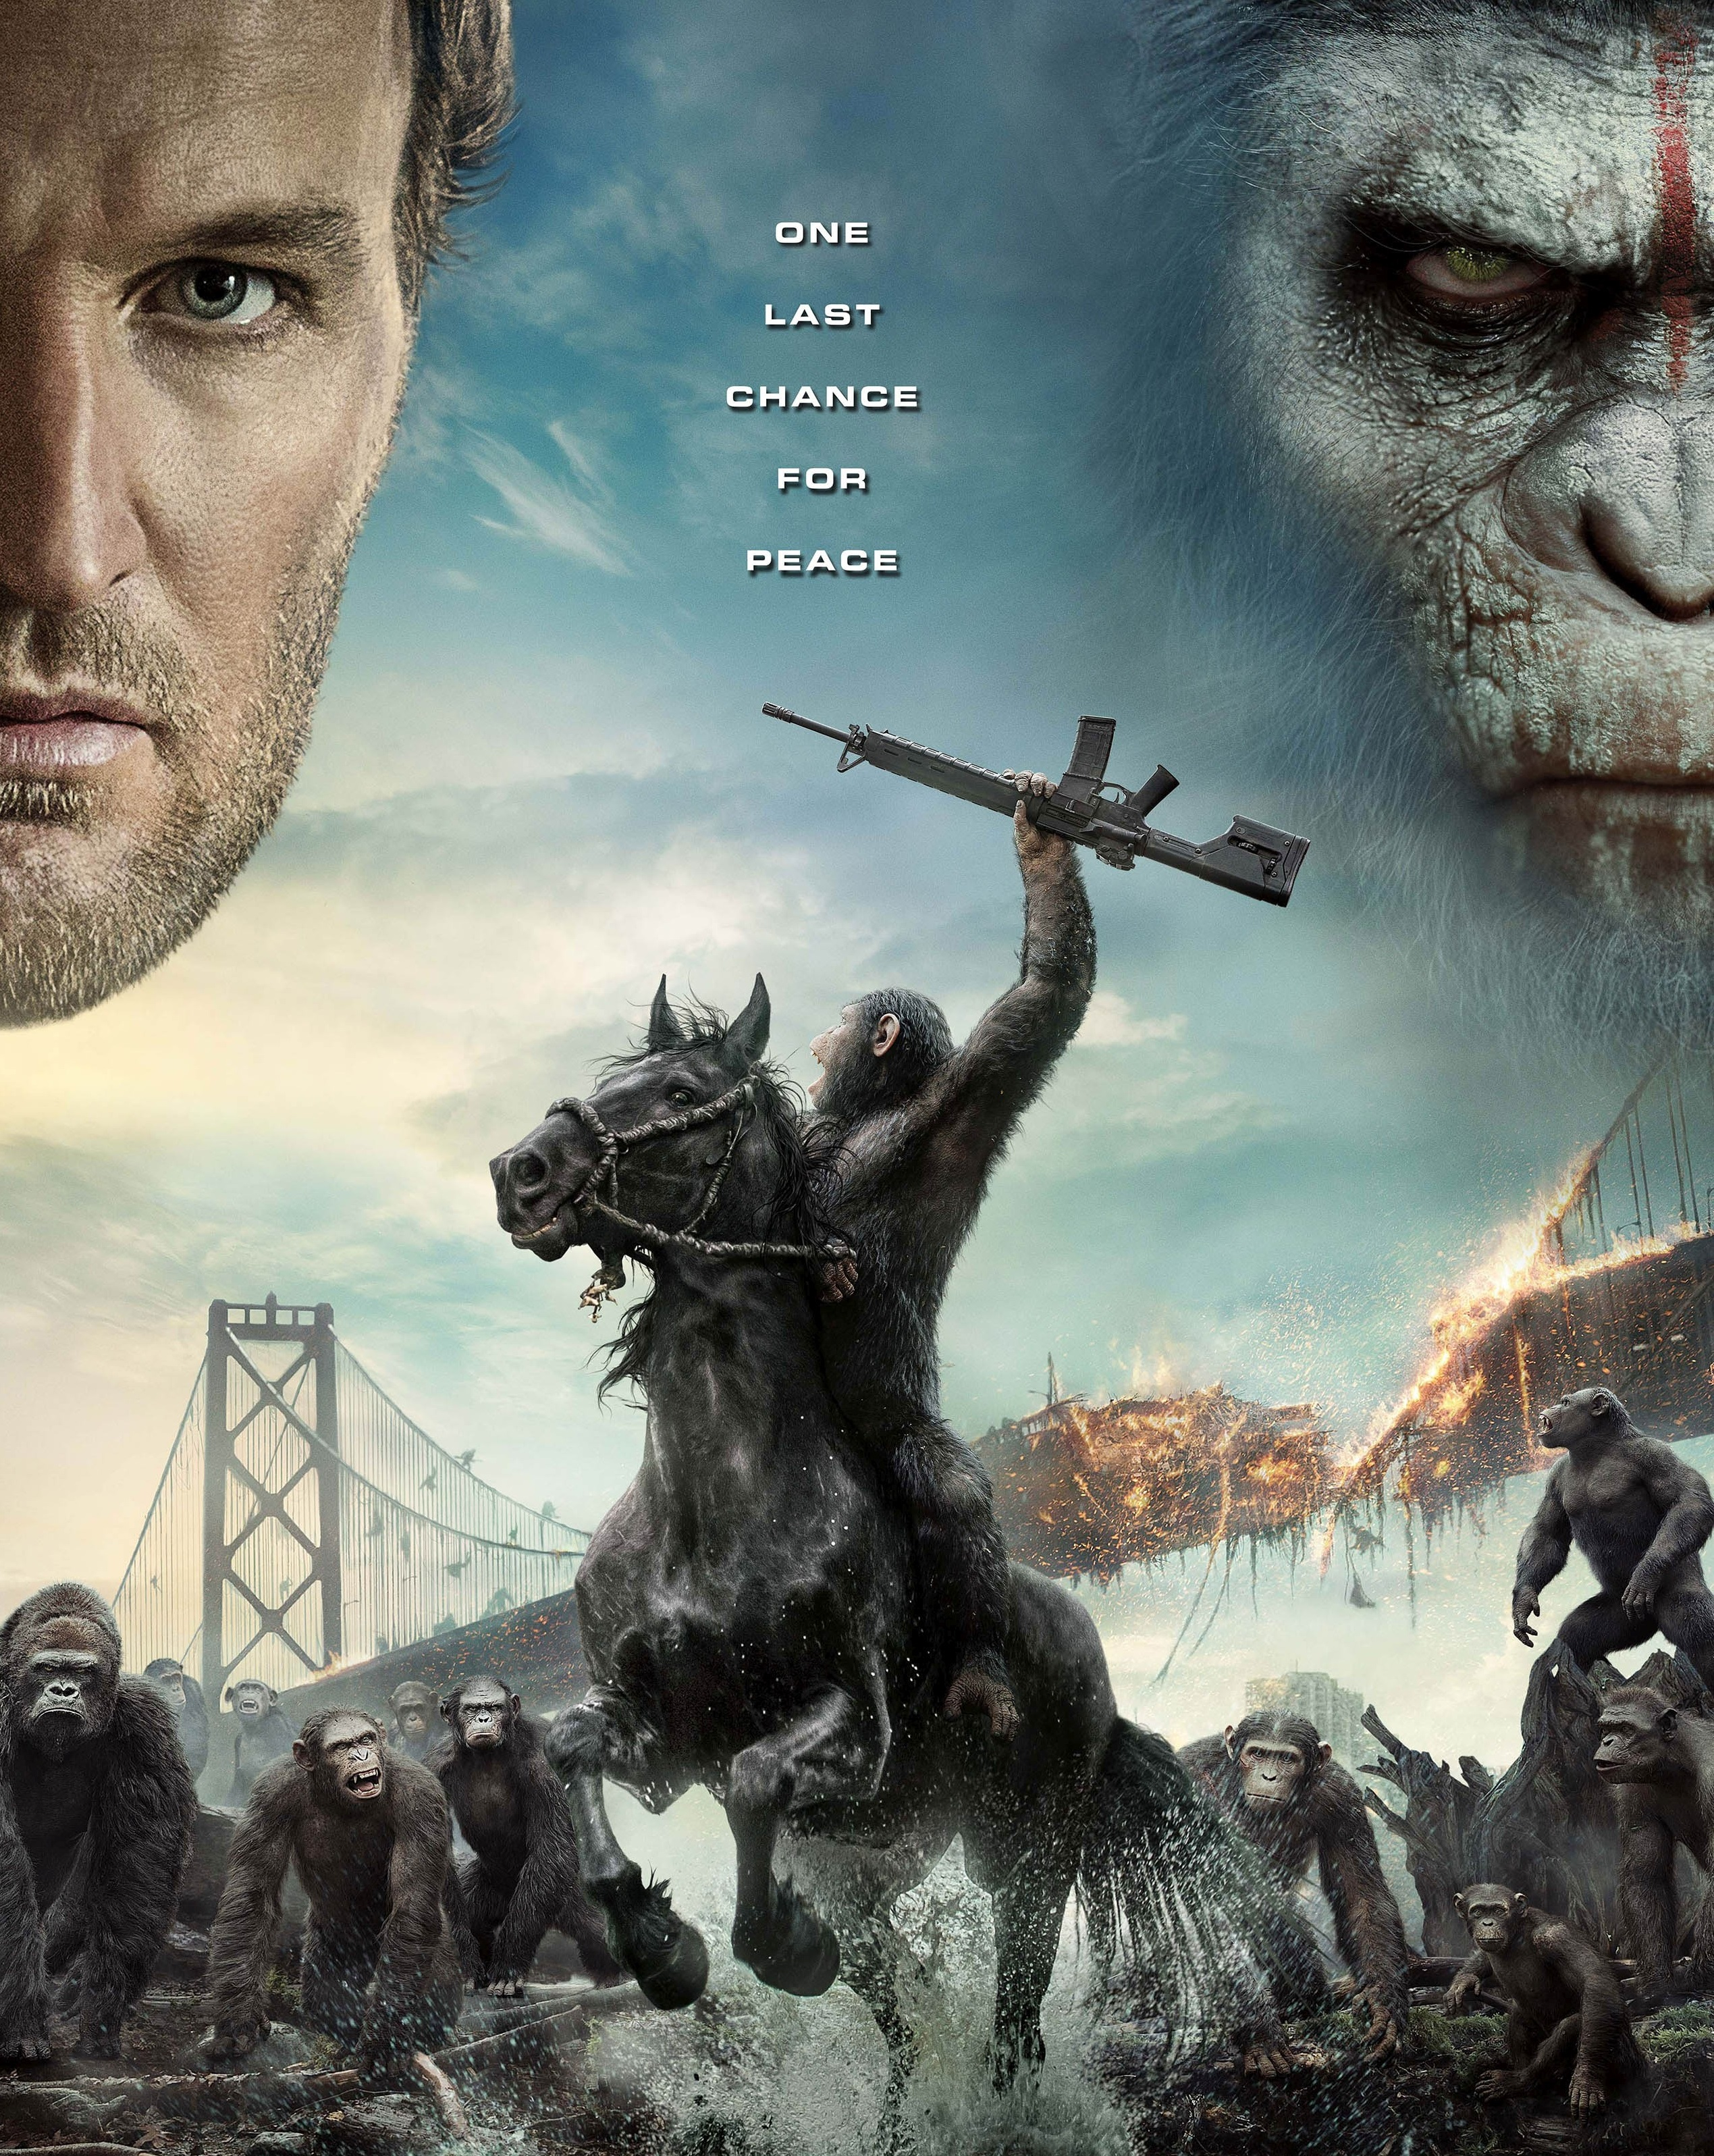 dawn-of-the-planet-of-the-apes_poster_goldposter_com_89_1.jpg